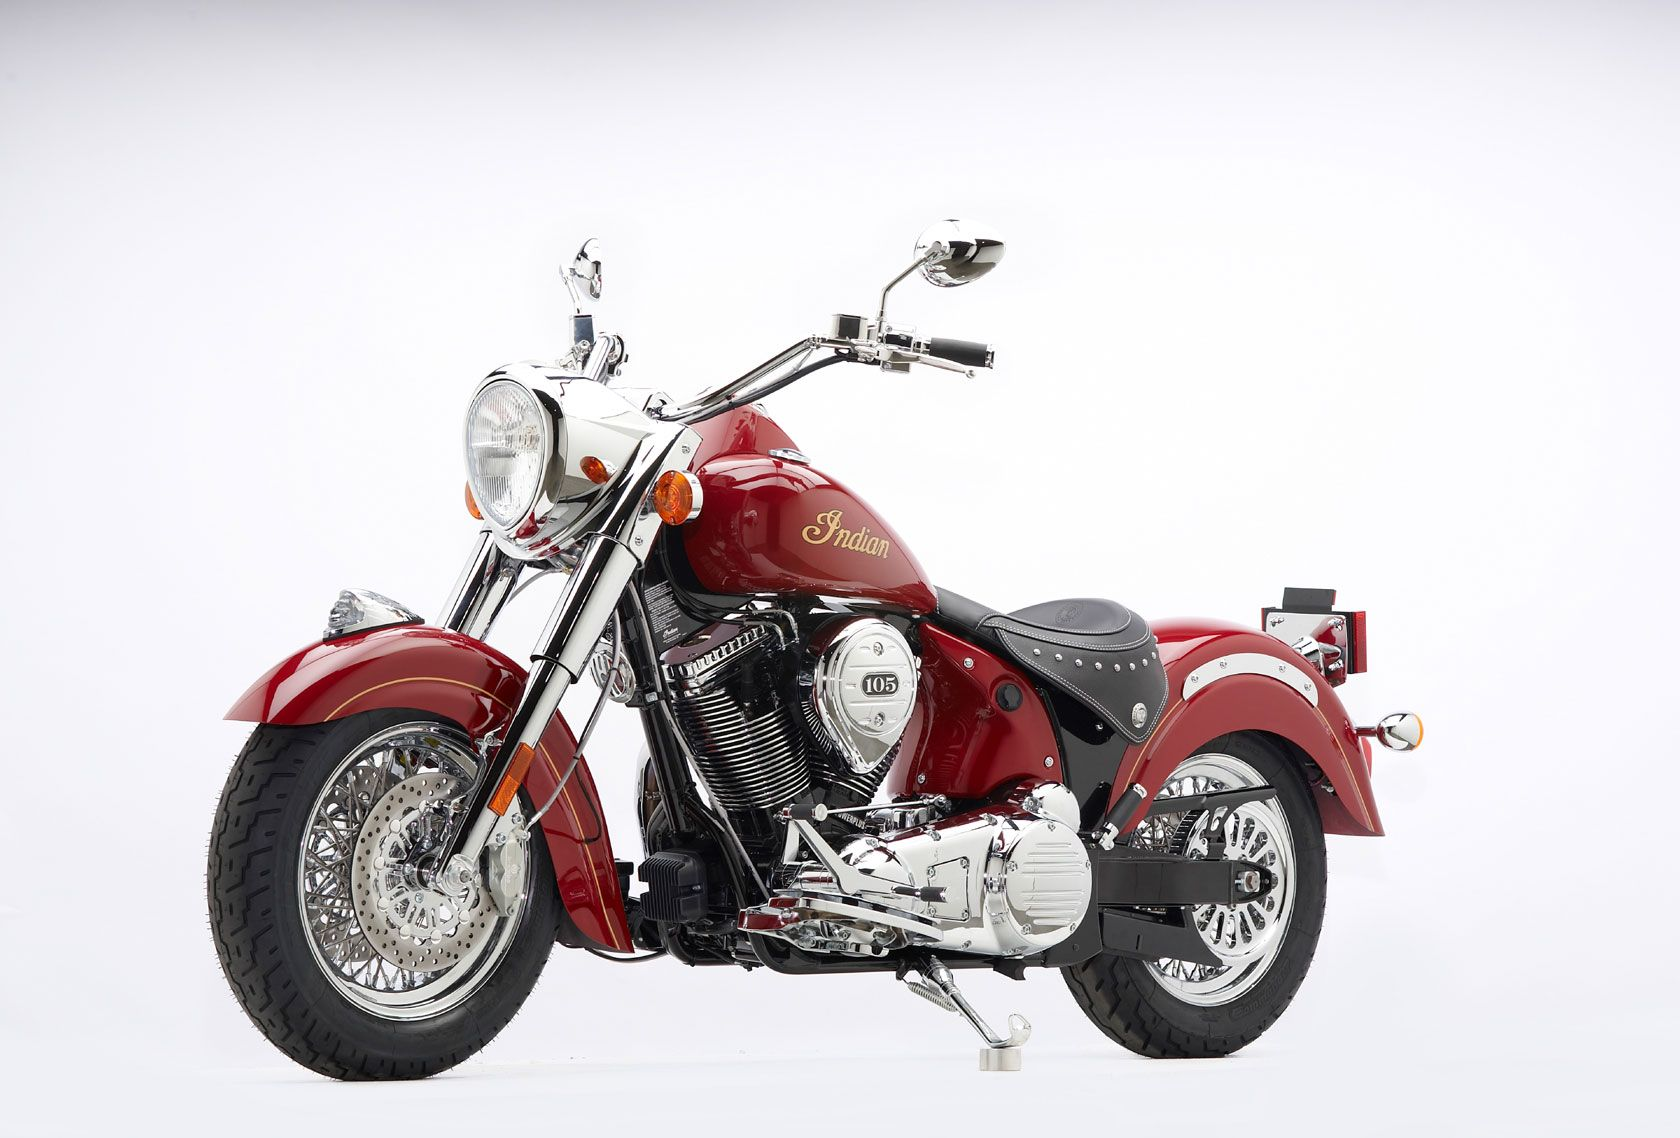 2010 Indian Chief. Indian MotorcyclesCars MotorcyclesClassic ...